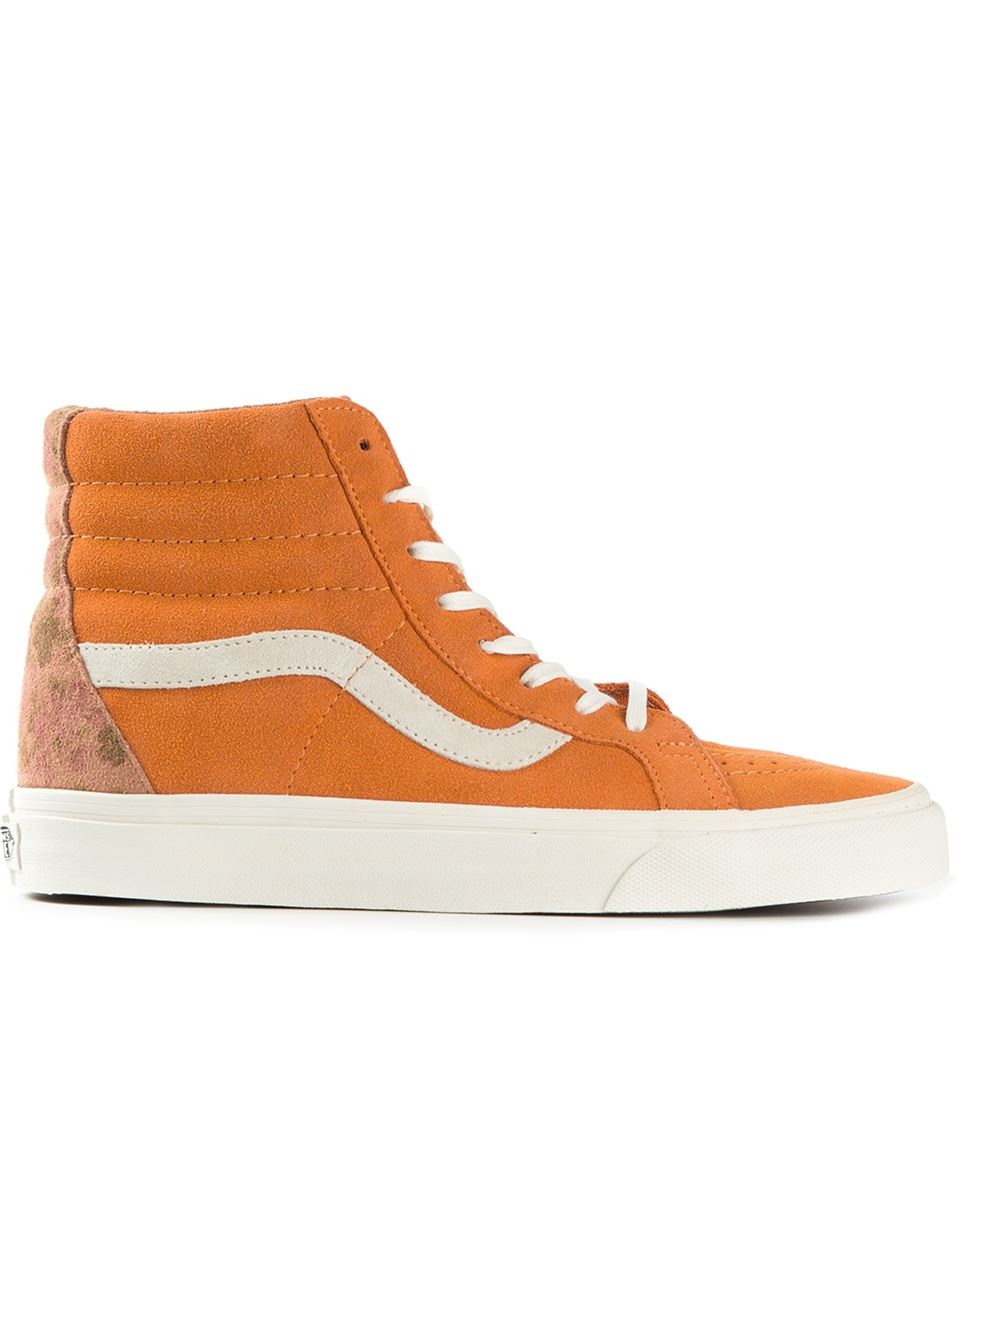 4054fcb4fda Vans  sk8 Hi Reissue  Sneakers in Yellow for Men - Lyst